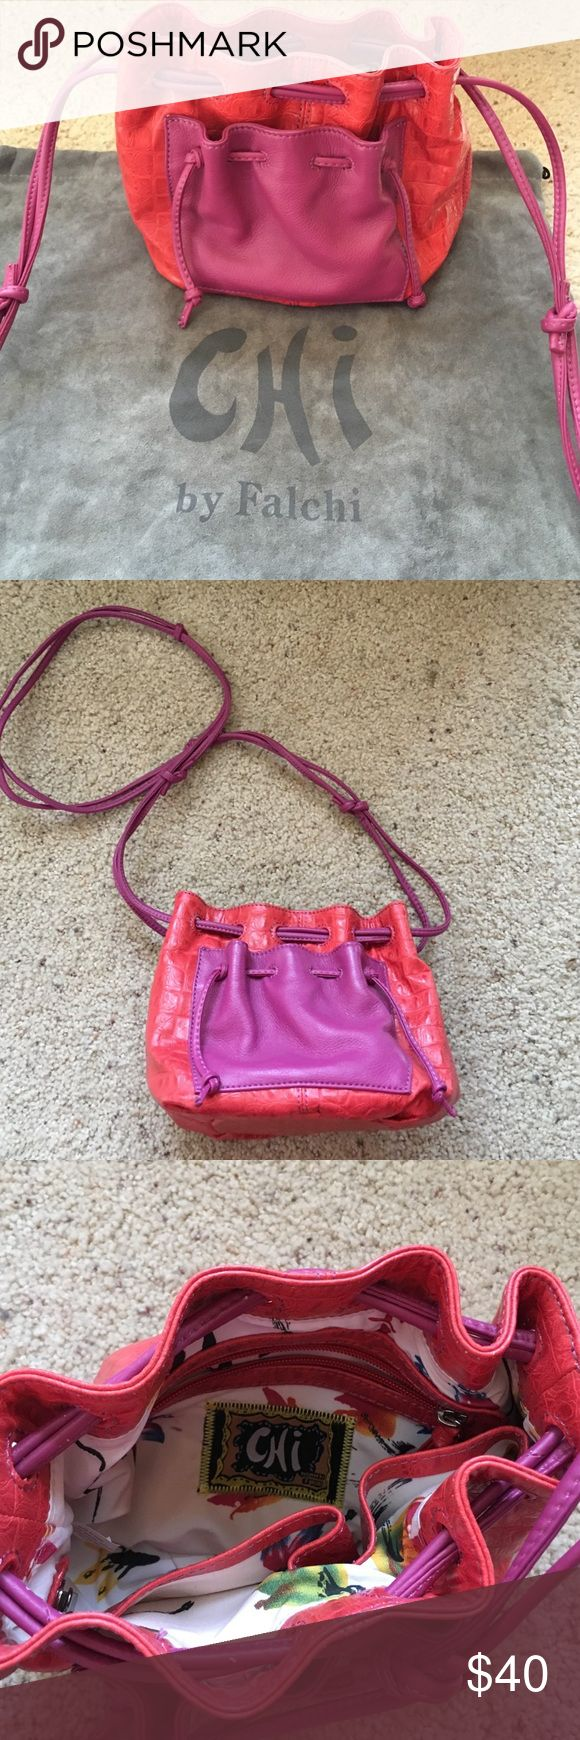 Chi By Falchi Purse! Authentic Chi by Falchi pink/red Leather Purse! Small compact size with many zippers for all your things! Excellent Condition, only used a couple times! Gray Suede purse bag included! Chi by Falchi Bags Crossbody Bags